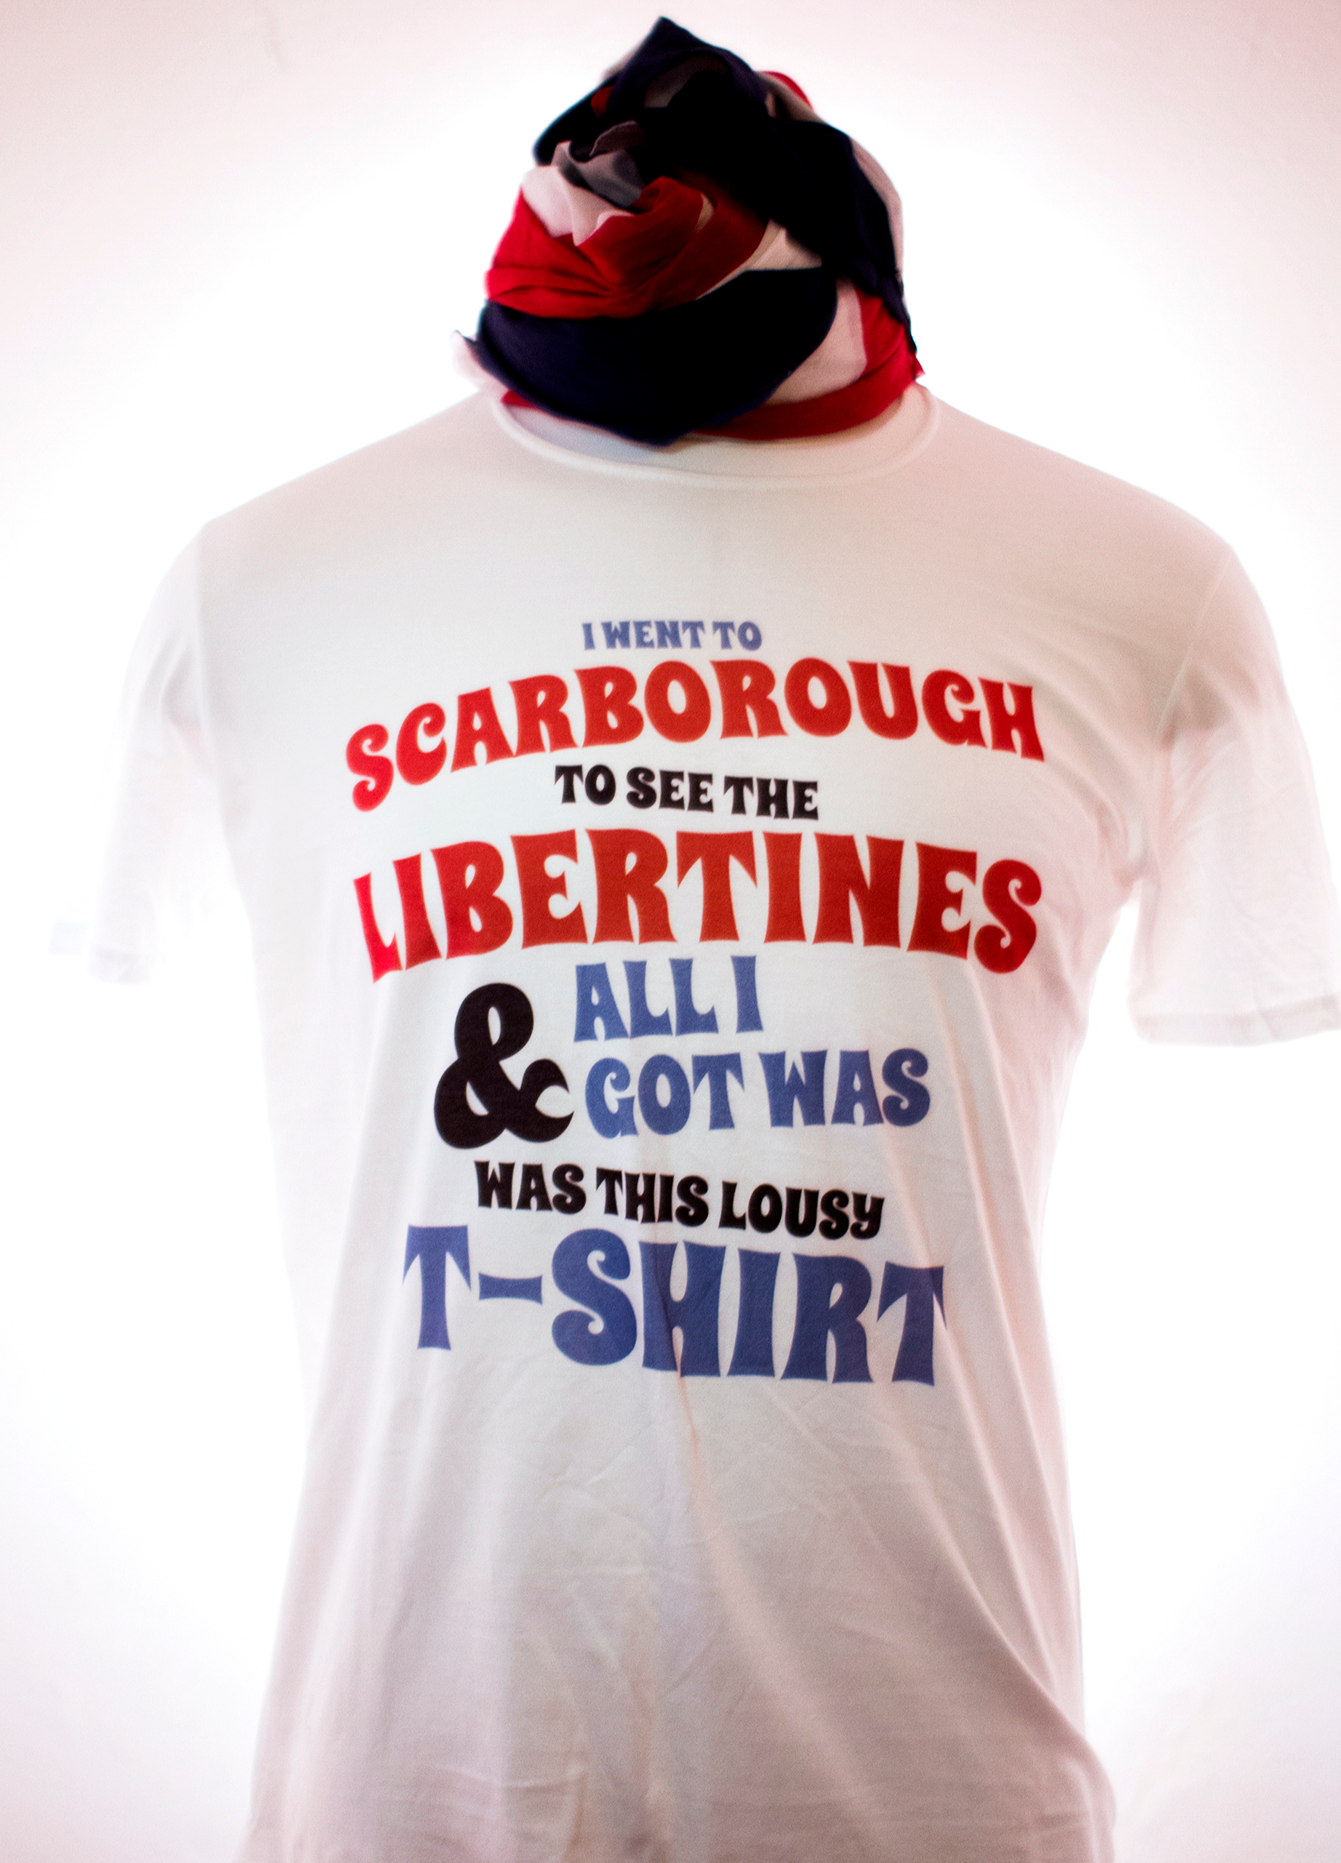 I Went to Scarborough T-Shirt (SALE) - The Libertines